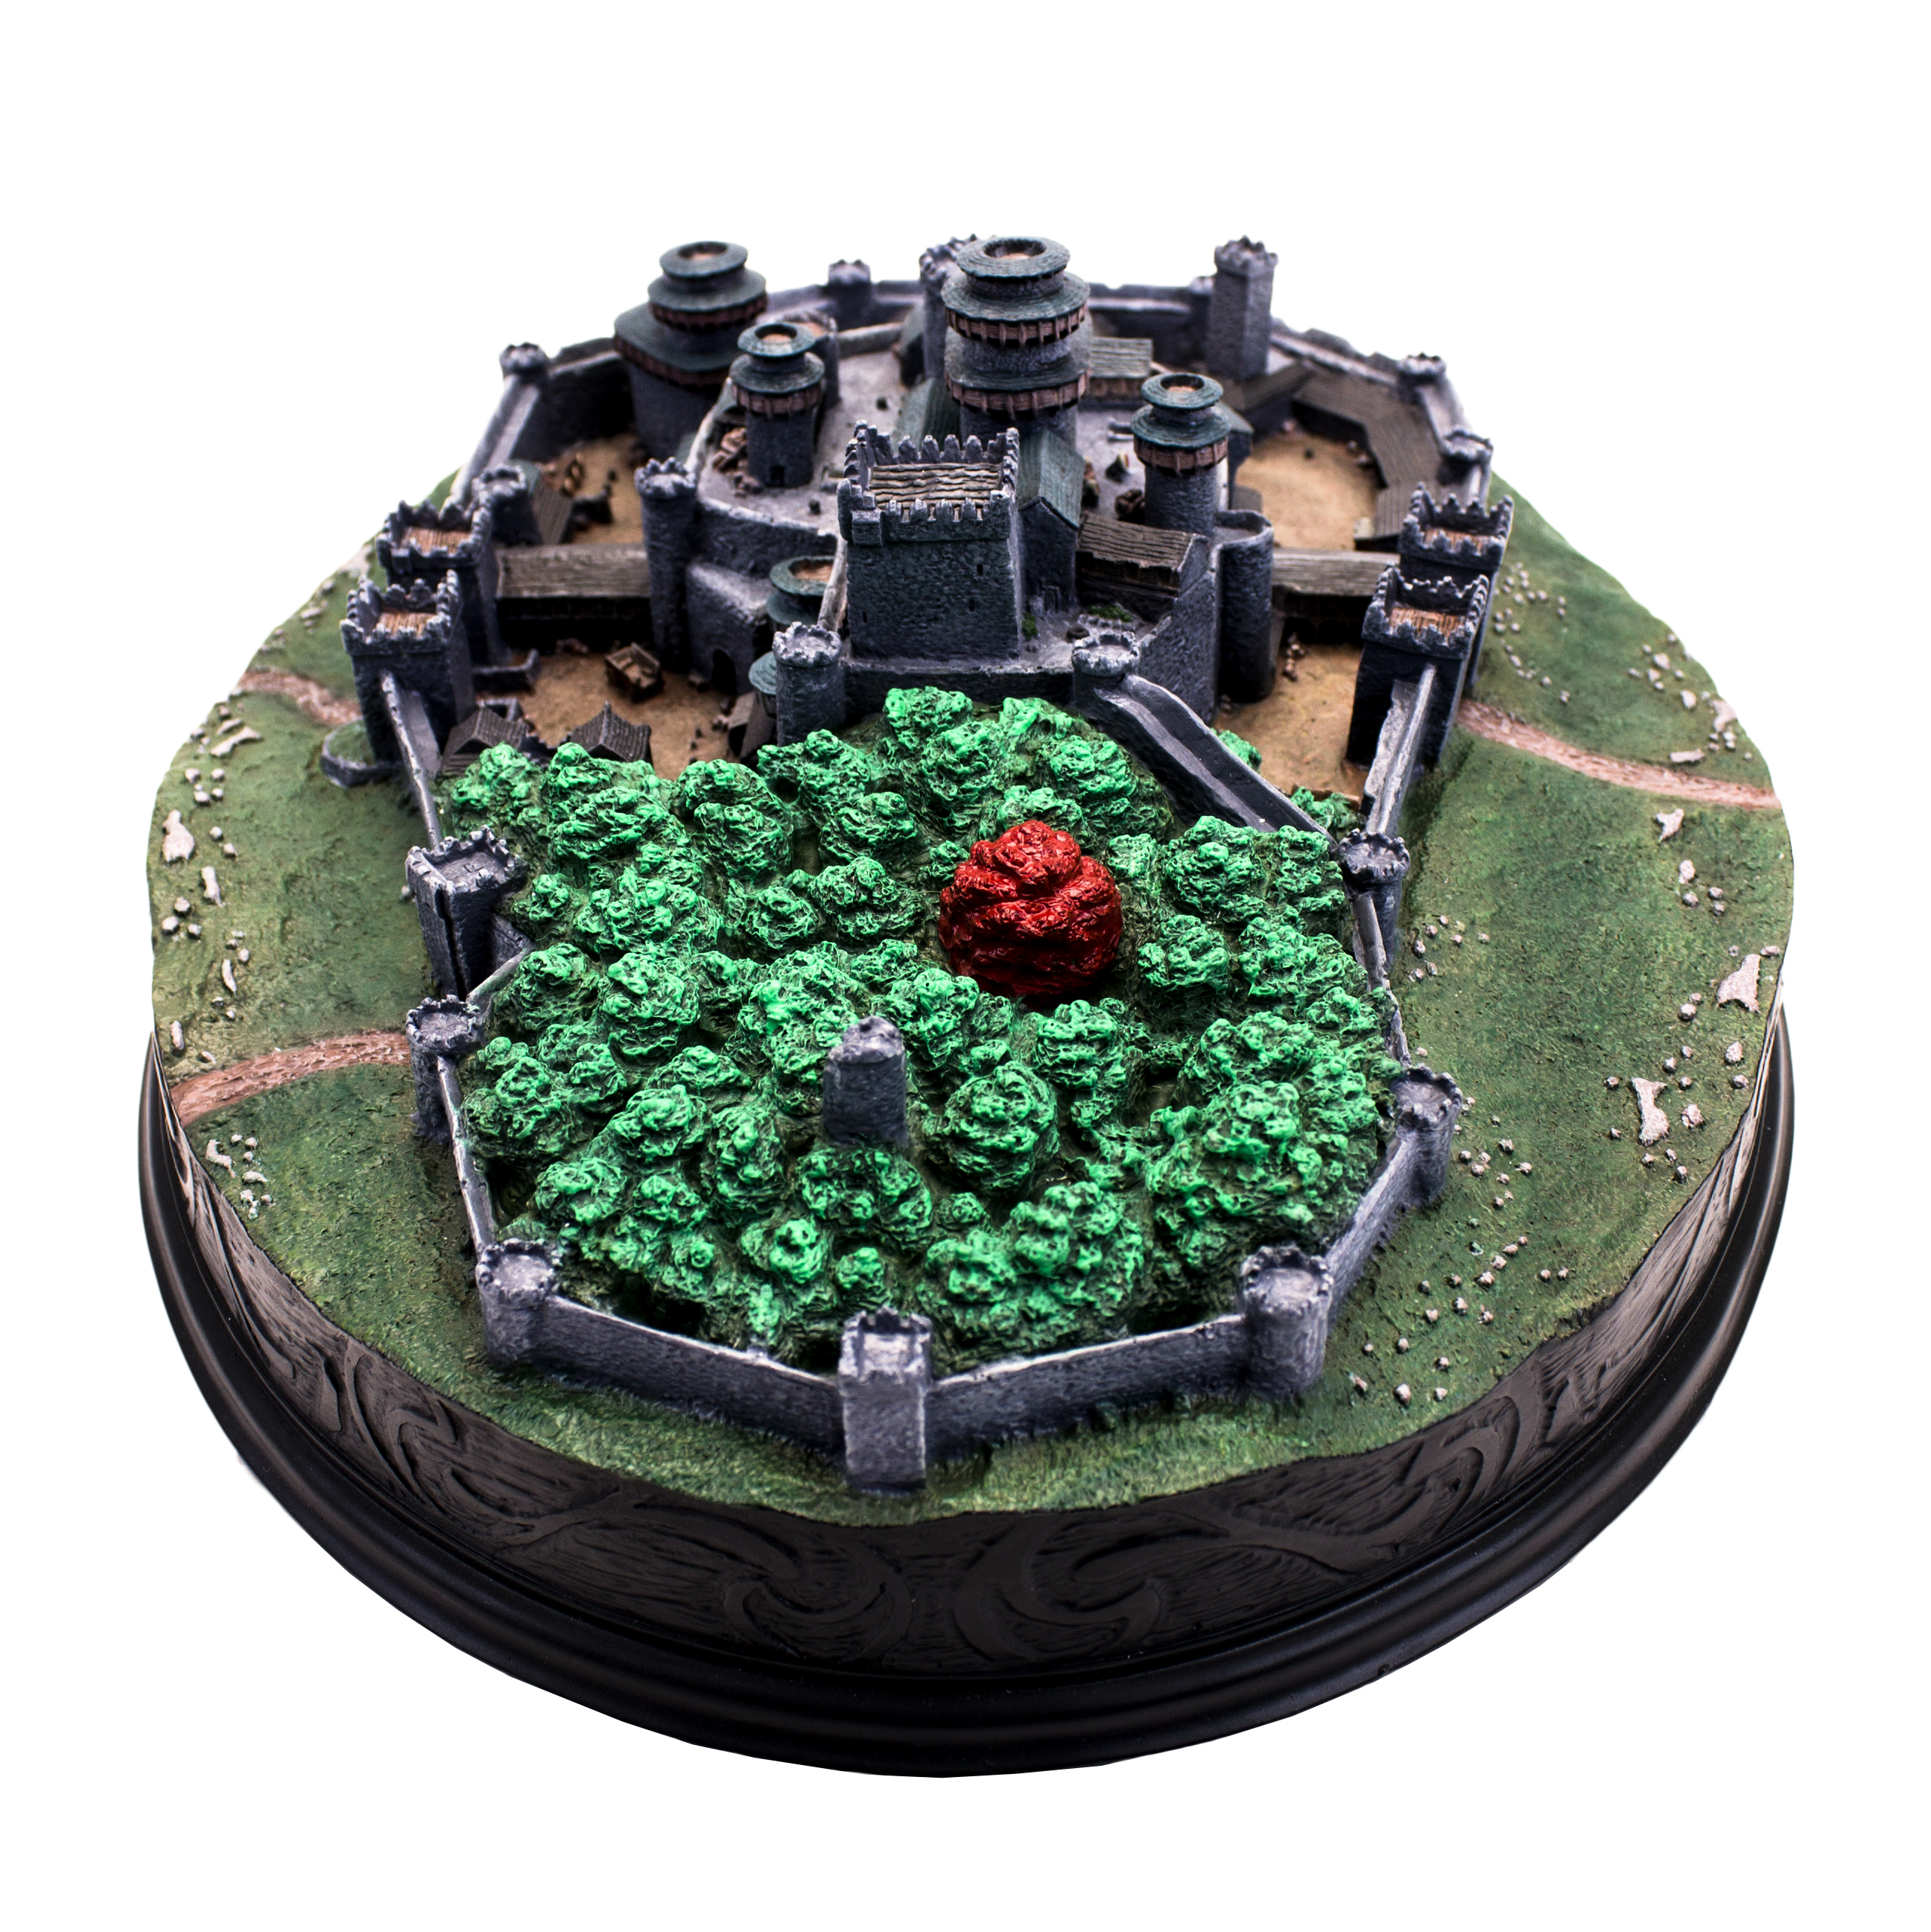 Factory entertainment to debut miniature winterfell at for Cool game of thrones gifts